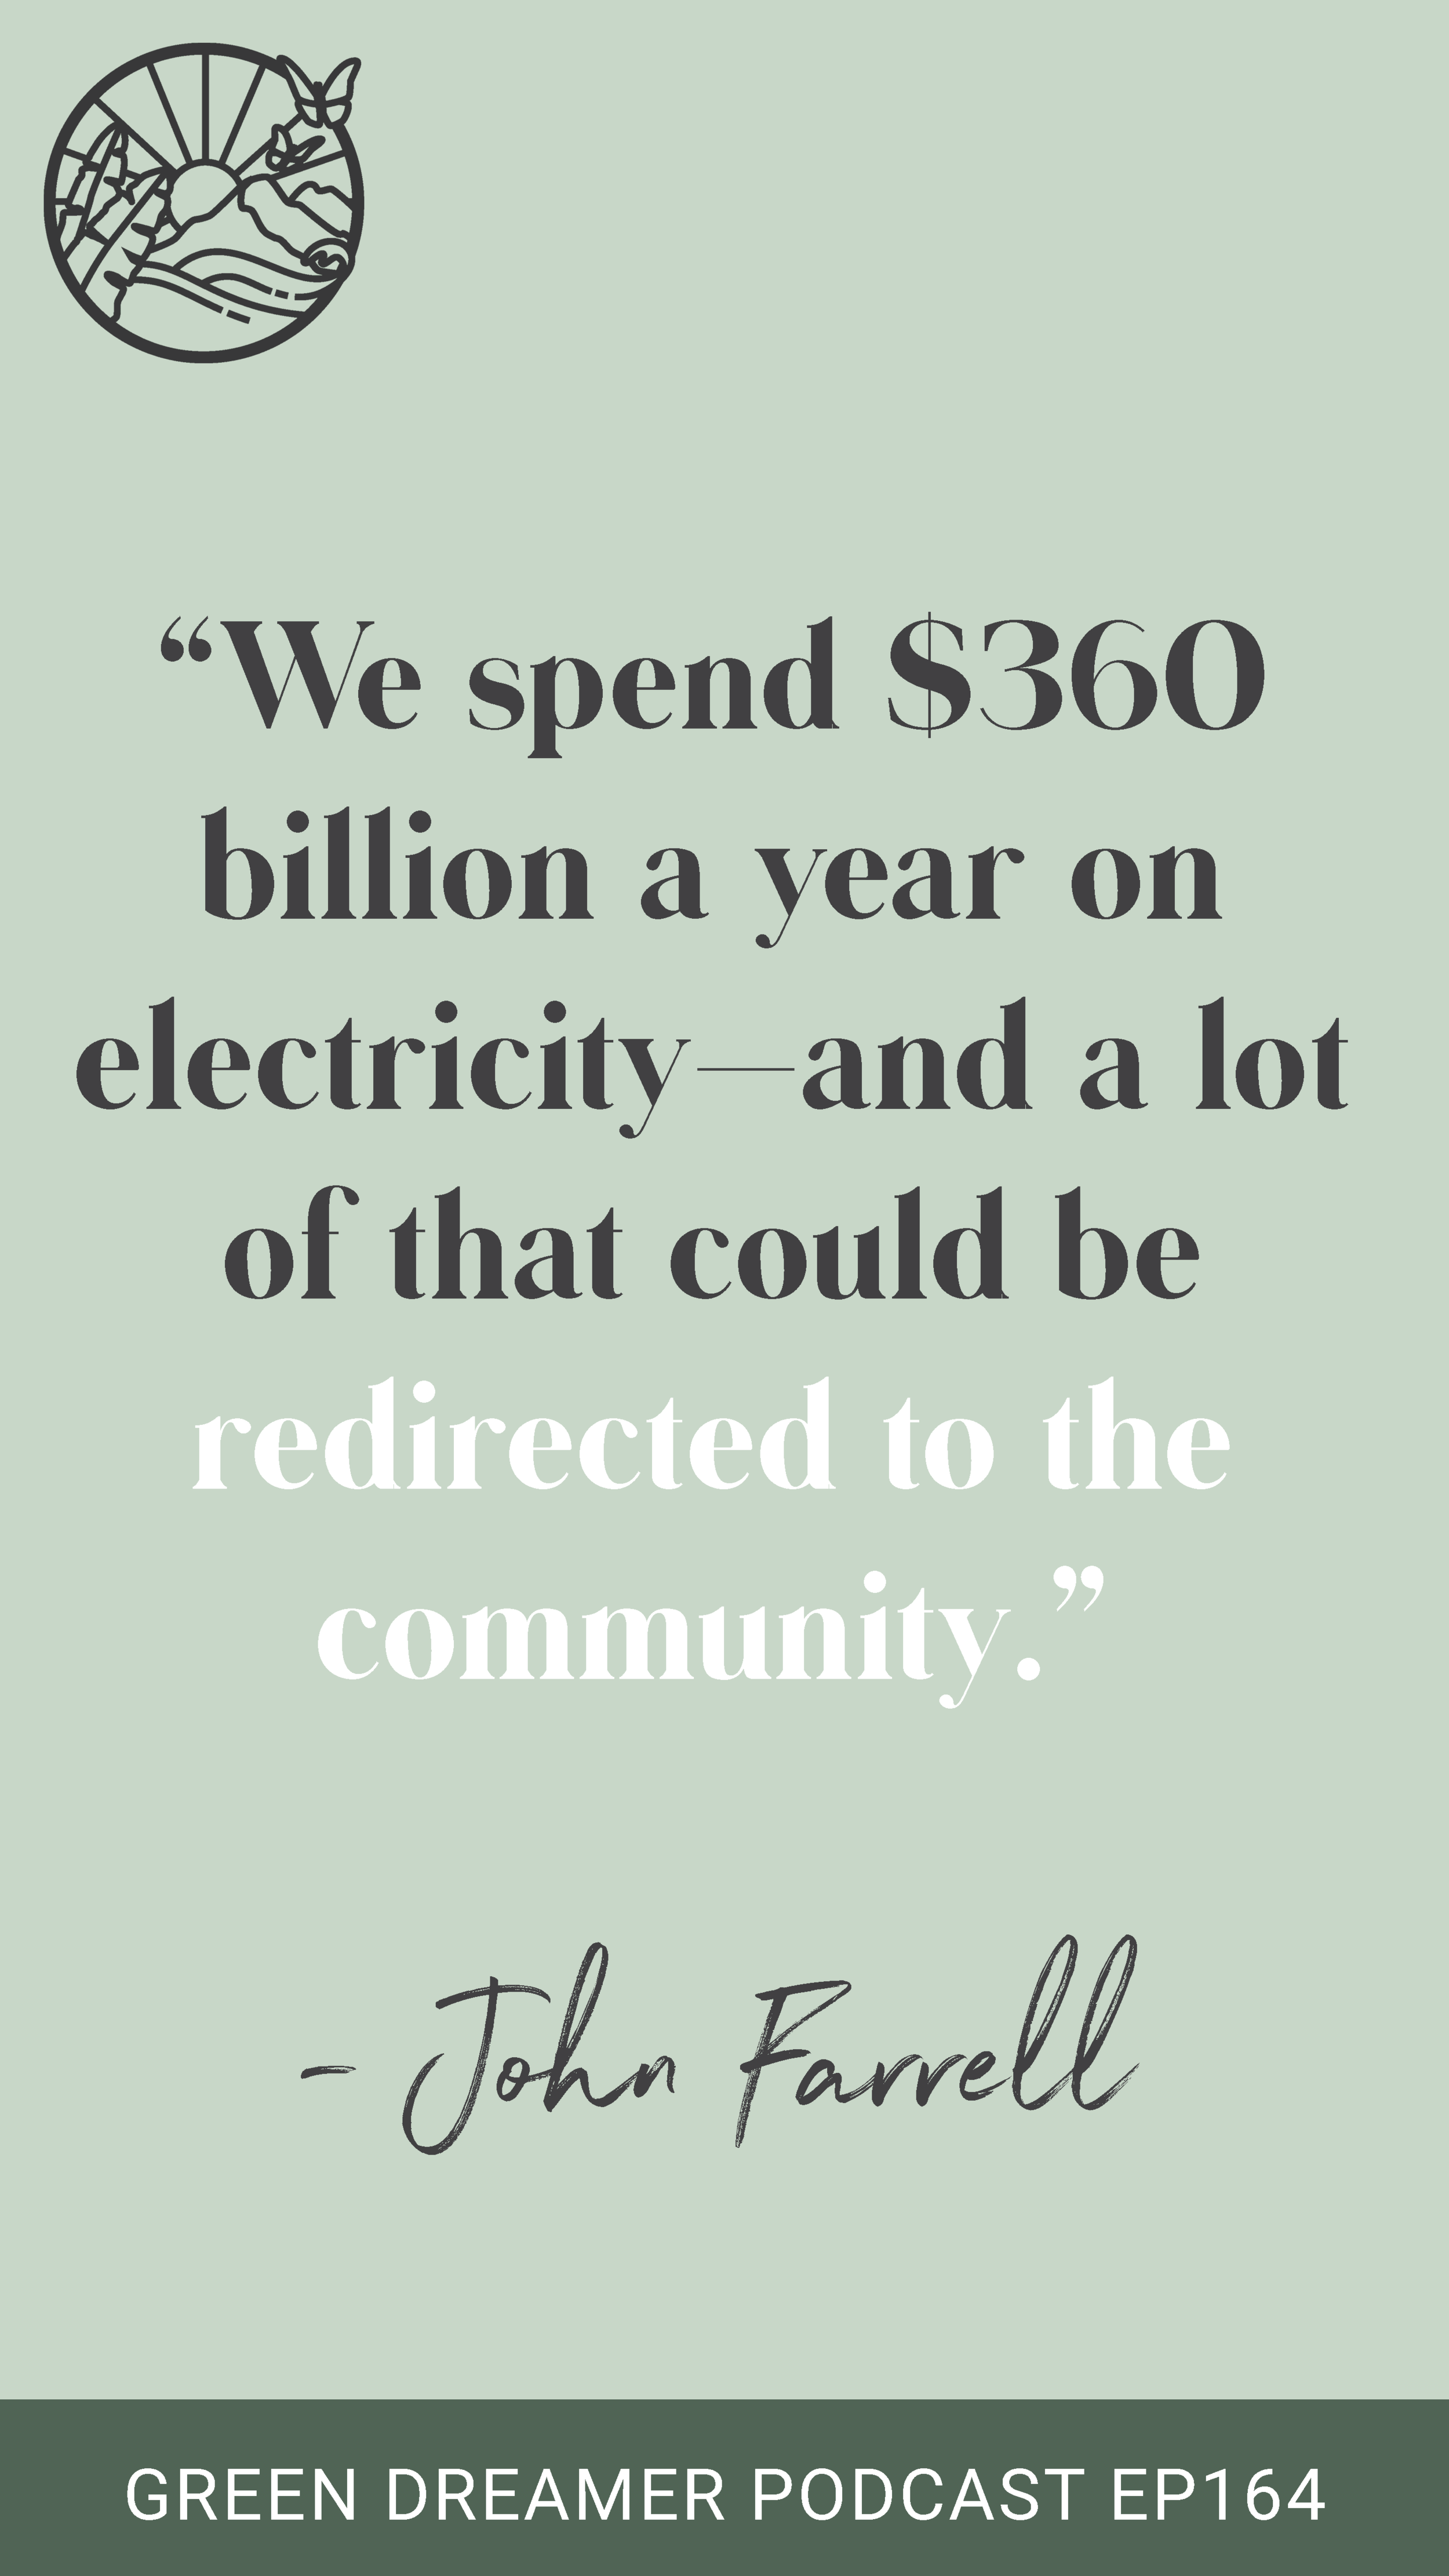 Decentralized energy quote